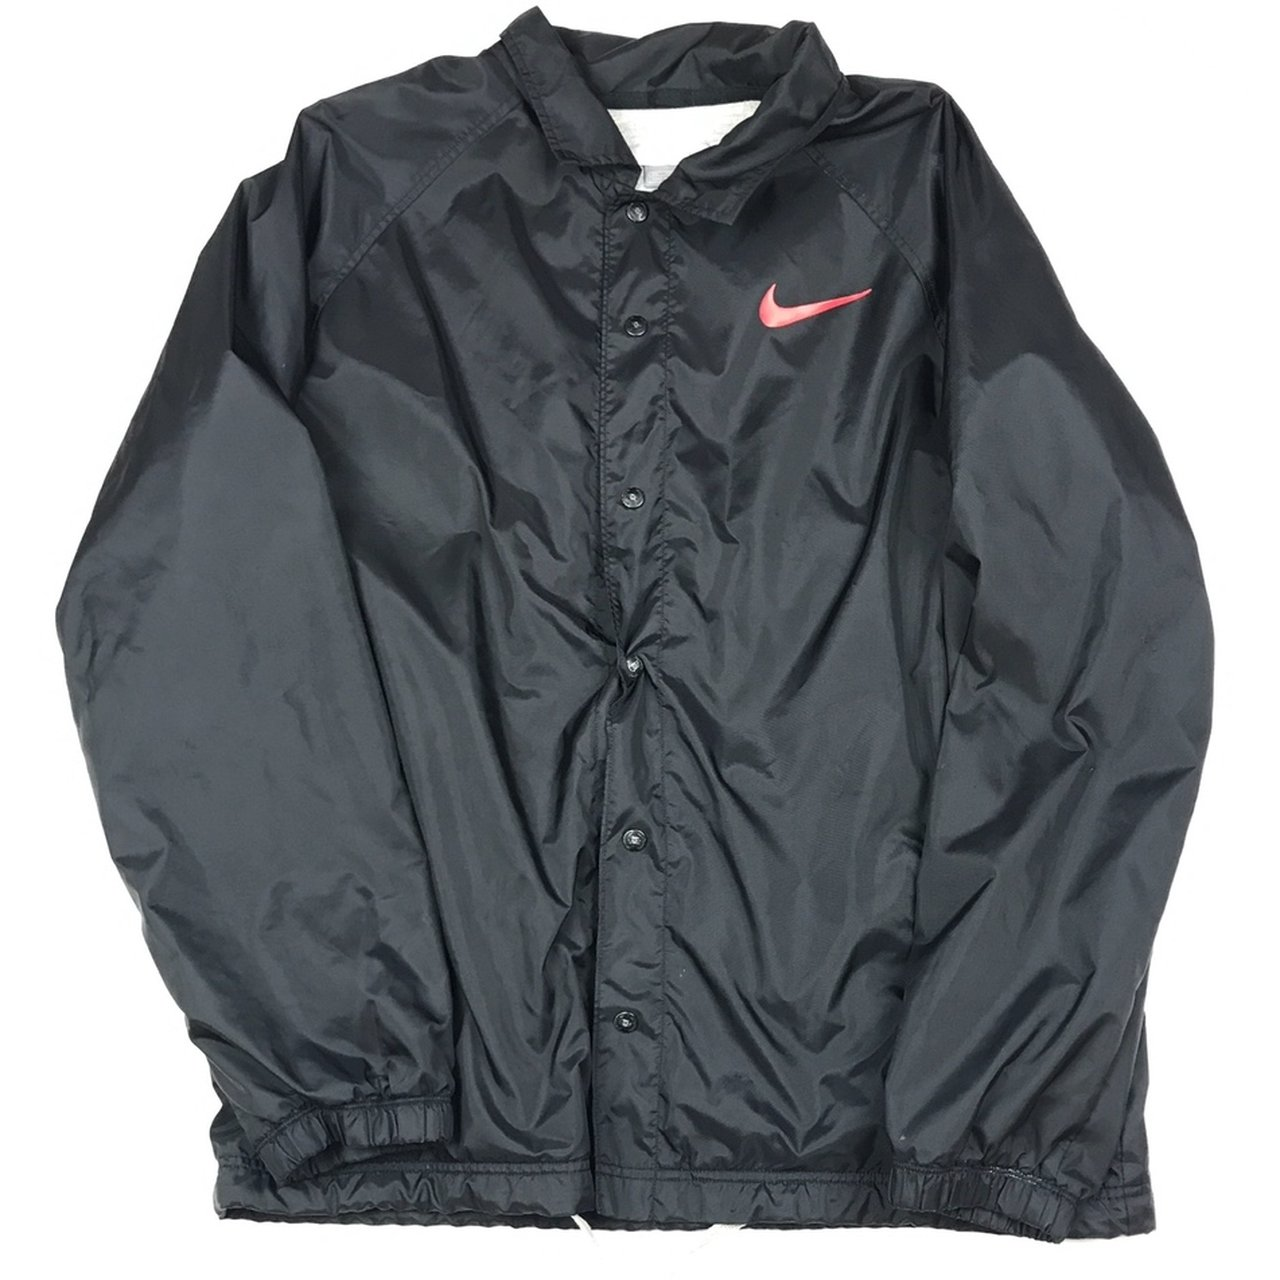 550590b4de  ttheyouthh. 24 days ago. United States. Vintage 90 s Nike swishy windbreaker  jacket. Men s XXL.